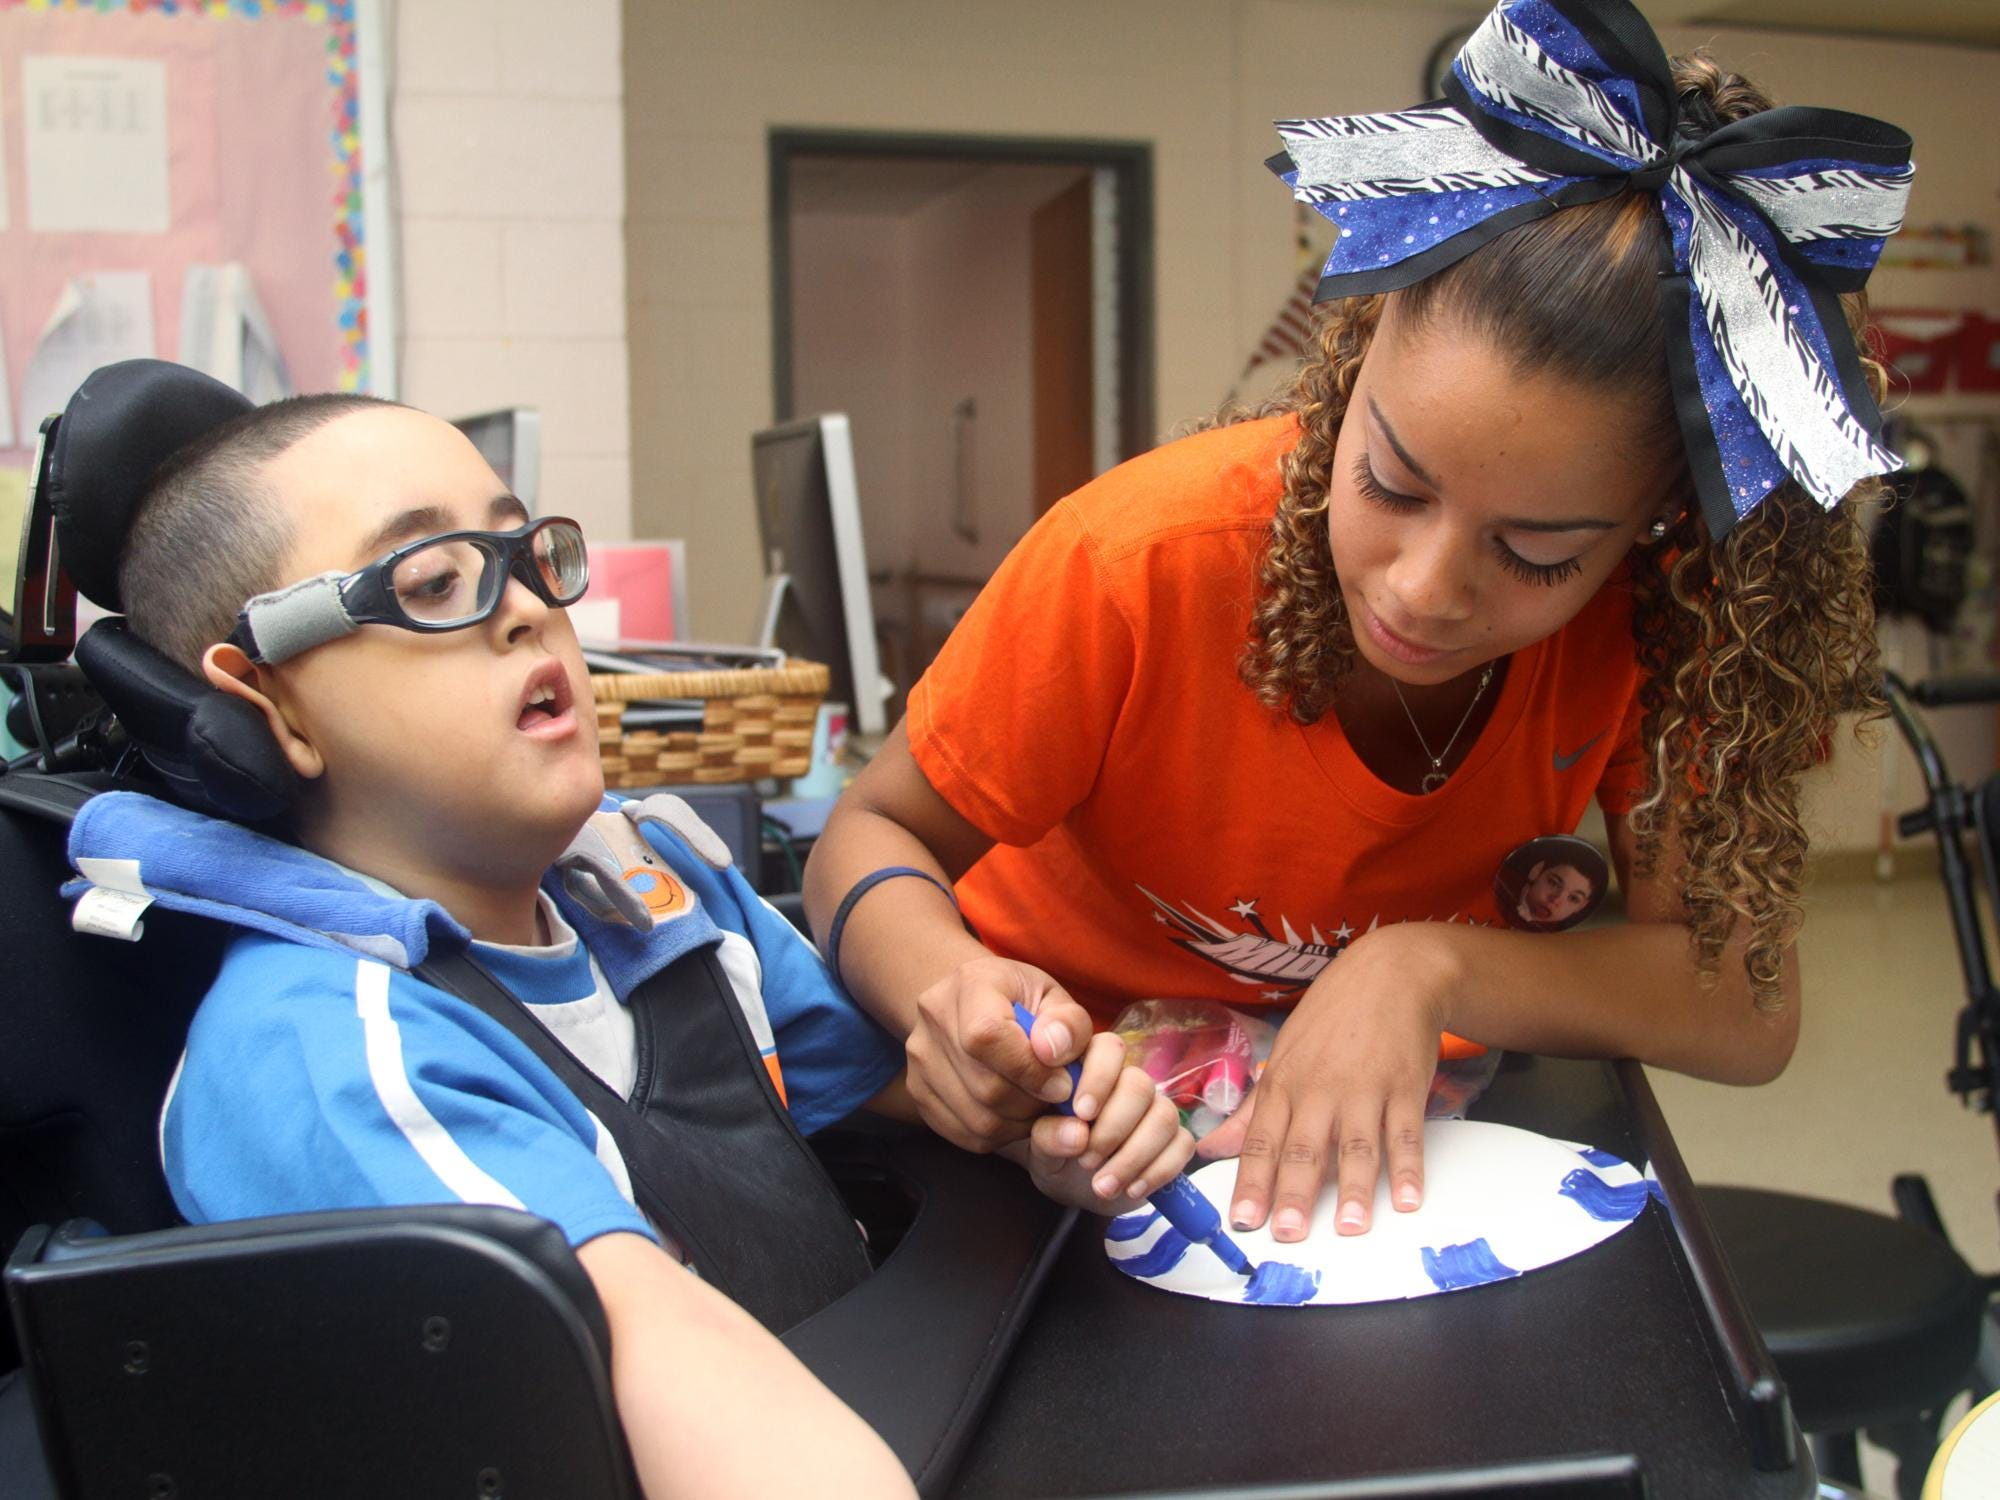 Cheerleader Amber Torres of Carteret decorates a noise maker with Justin (last name withheld) during a visit to the Lakeview School in Edison on Monday.